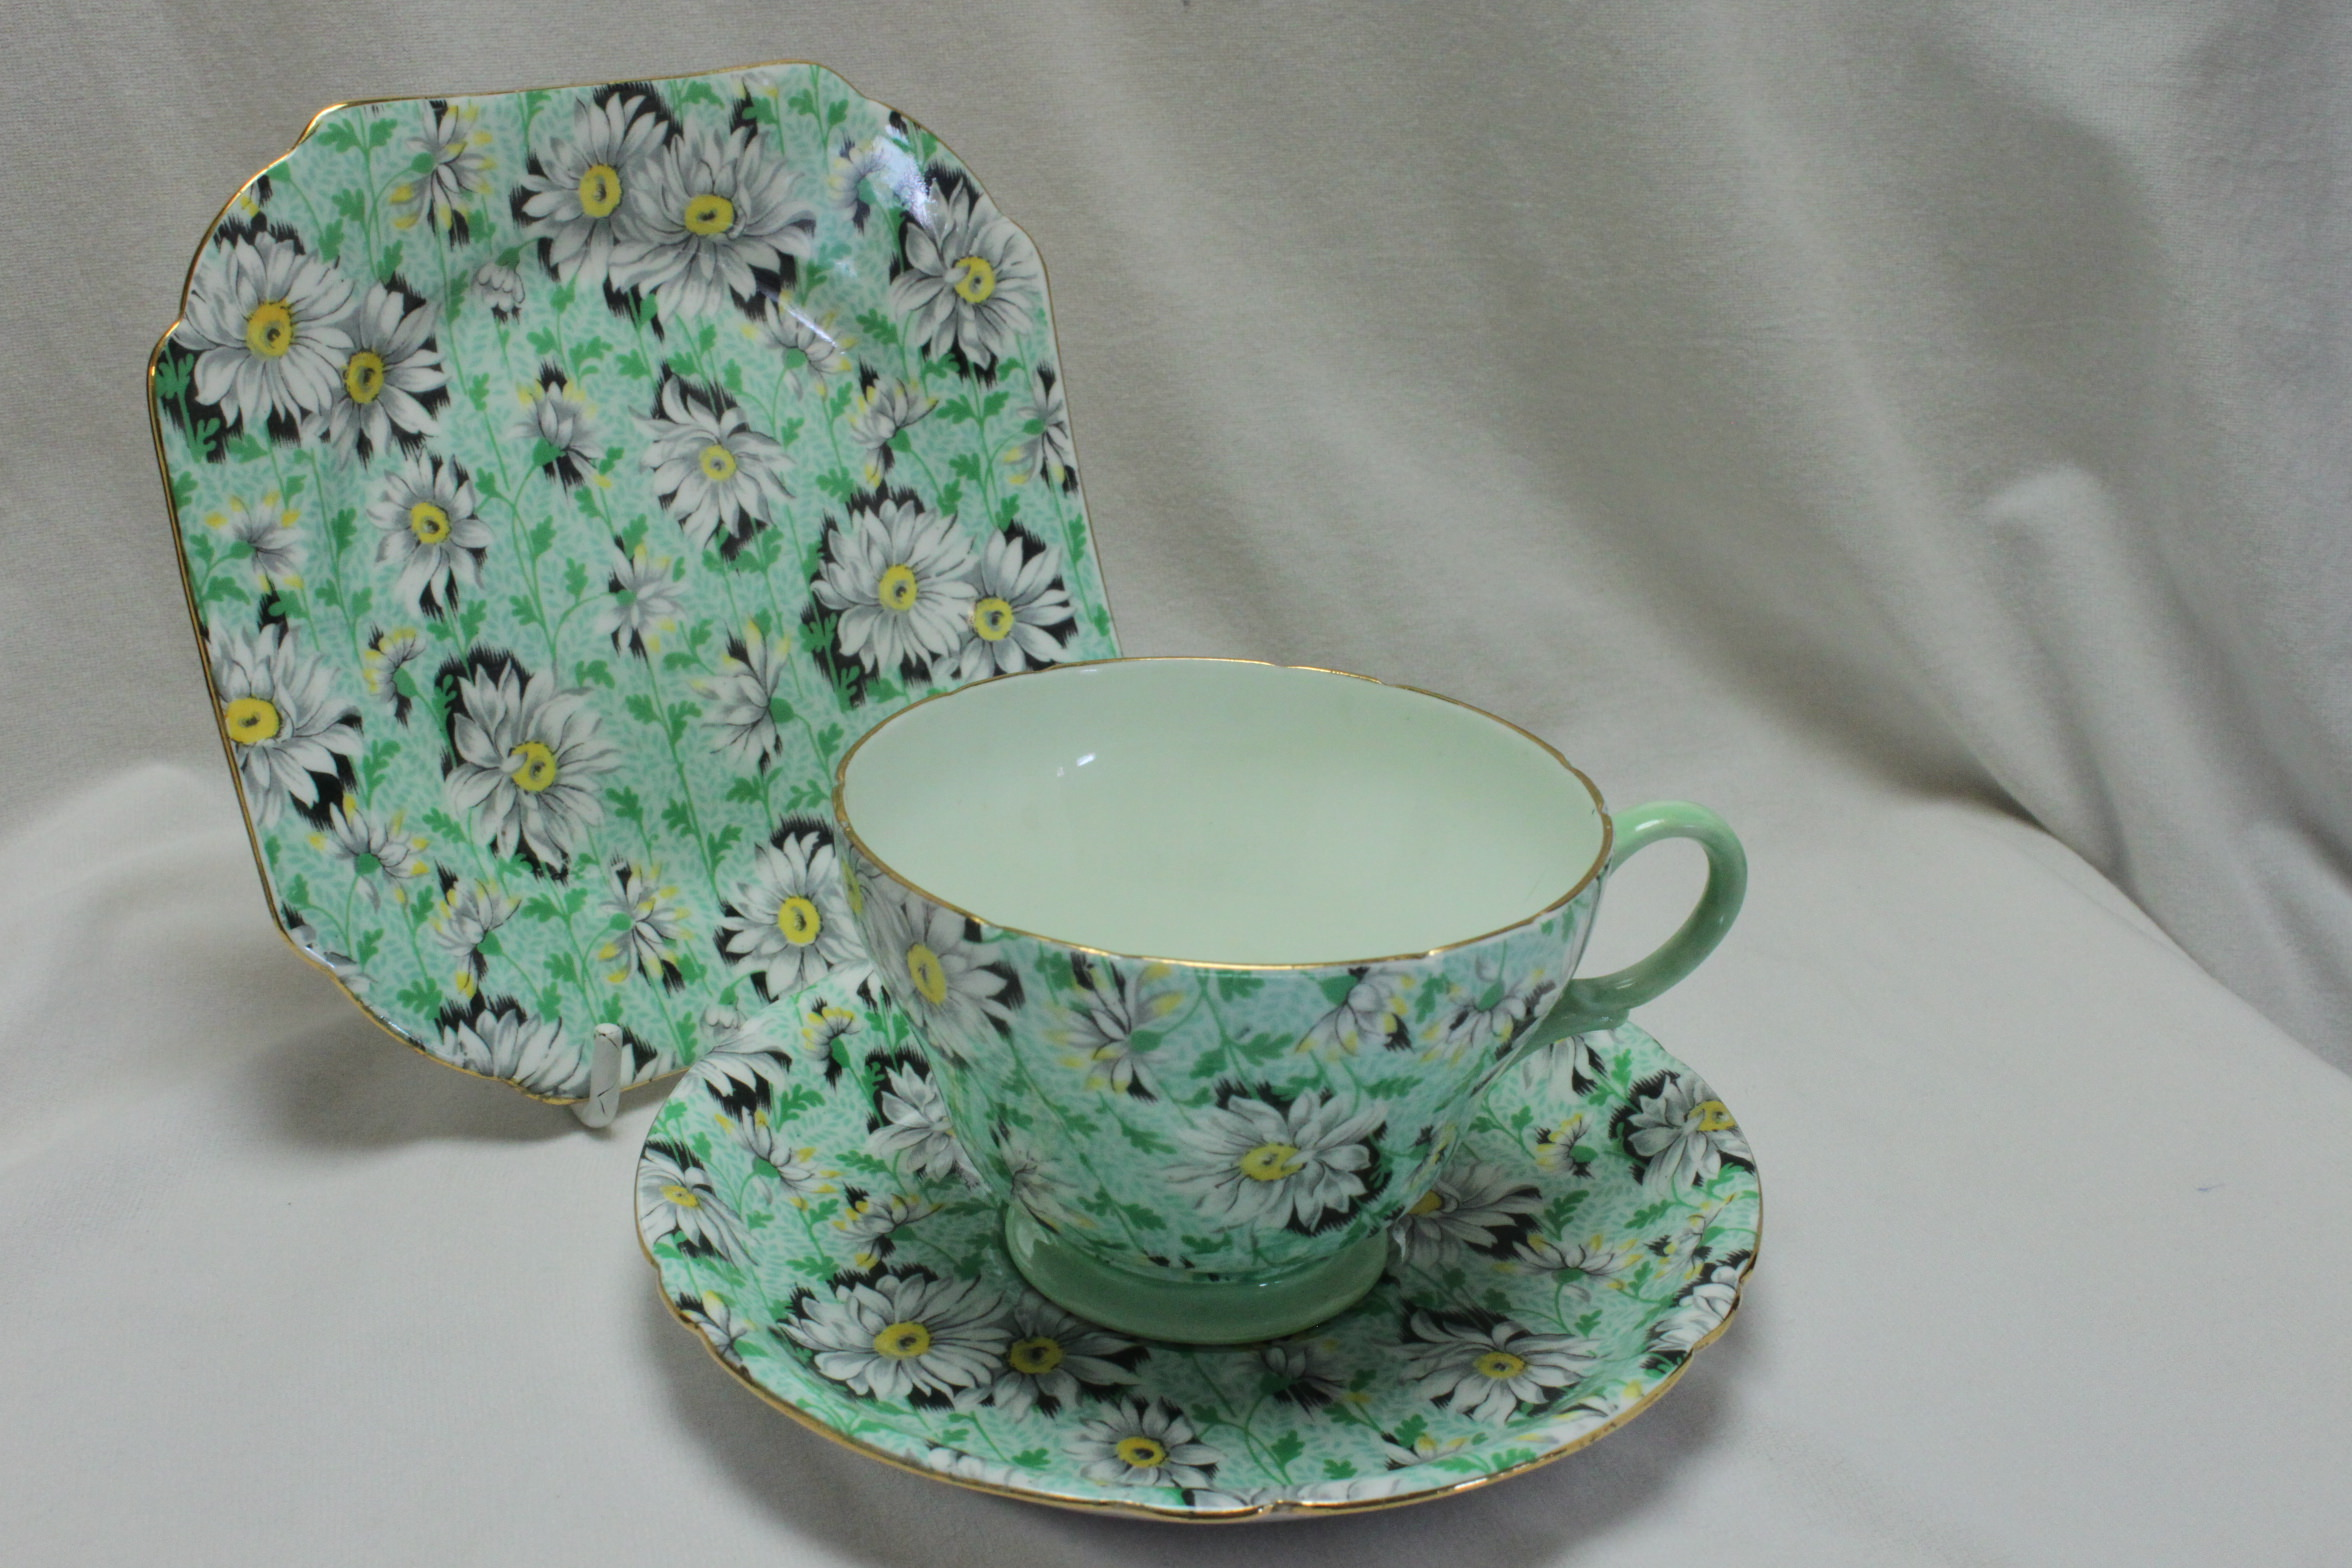 Shelley Green Daisy chintz cup saucer & plate pattern 13450